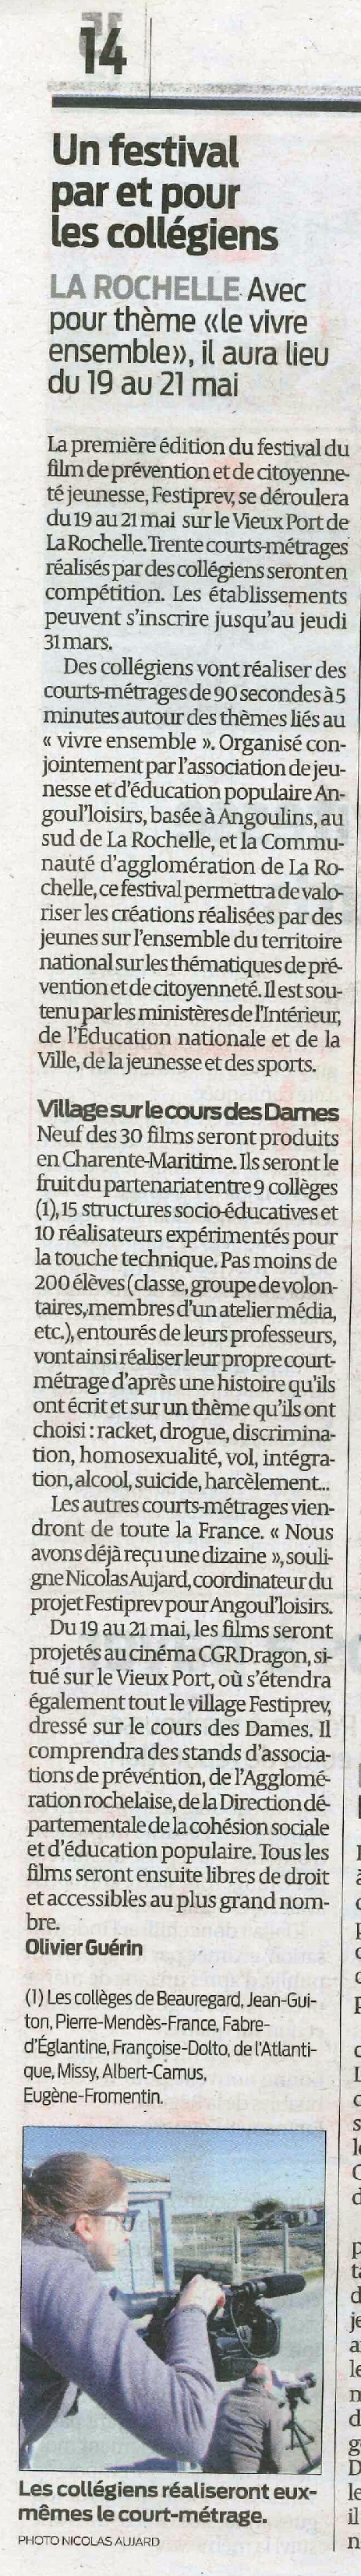 Sud Ouest 25 3 2016